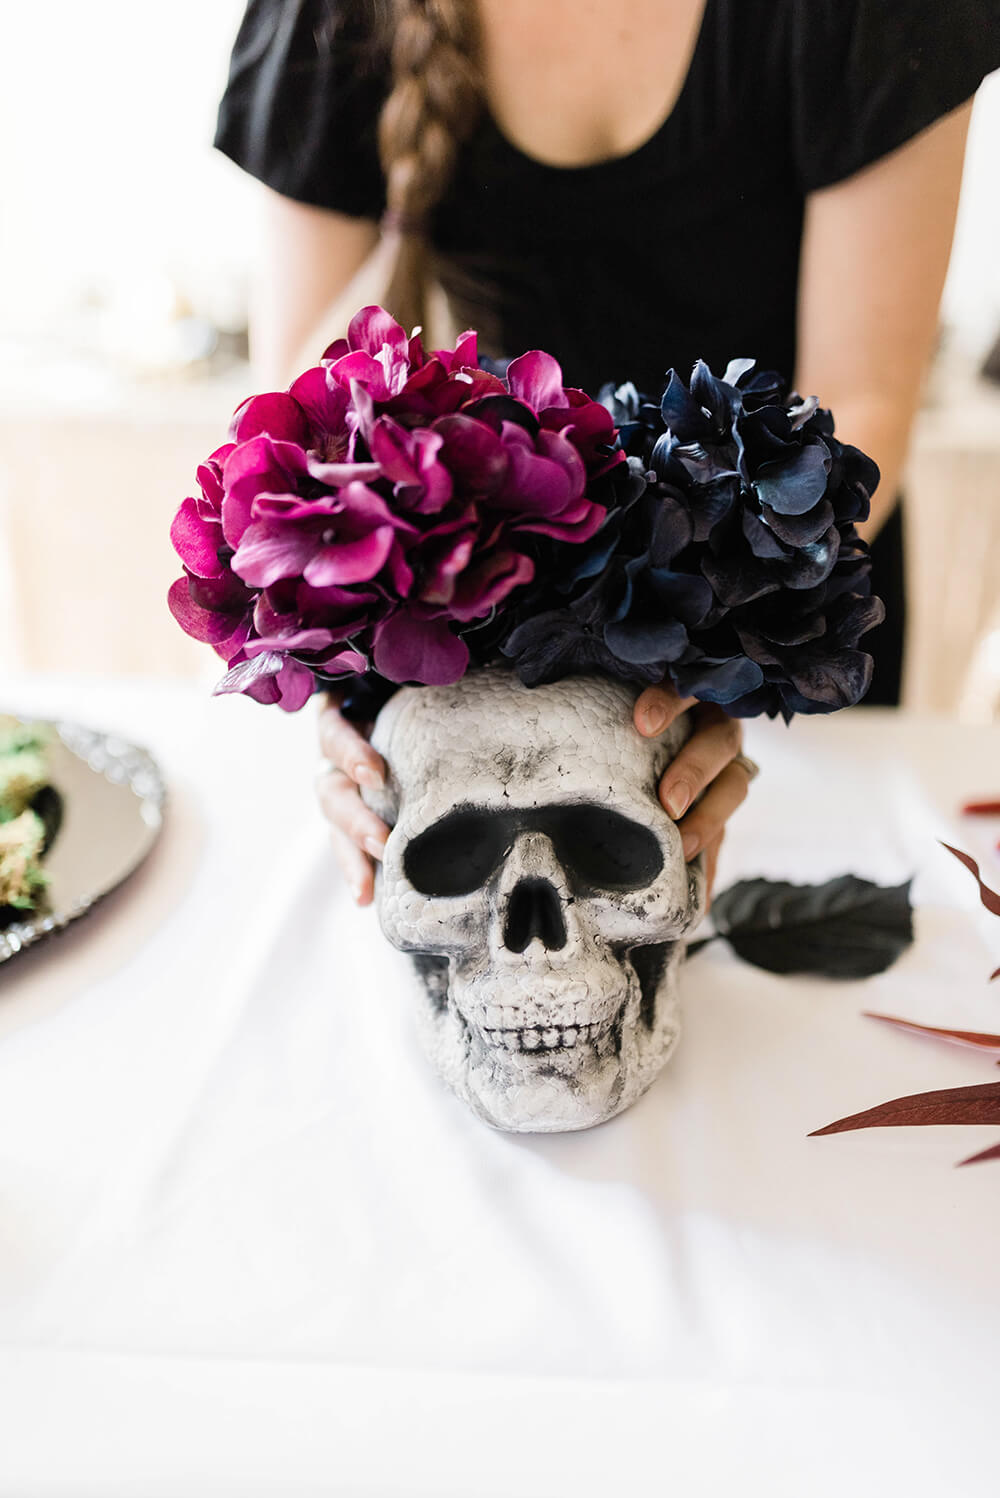 Balance the flowers on the skull for Halloween centerpiece